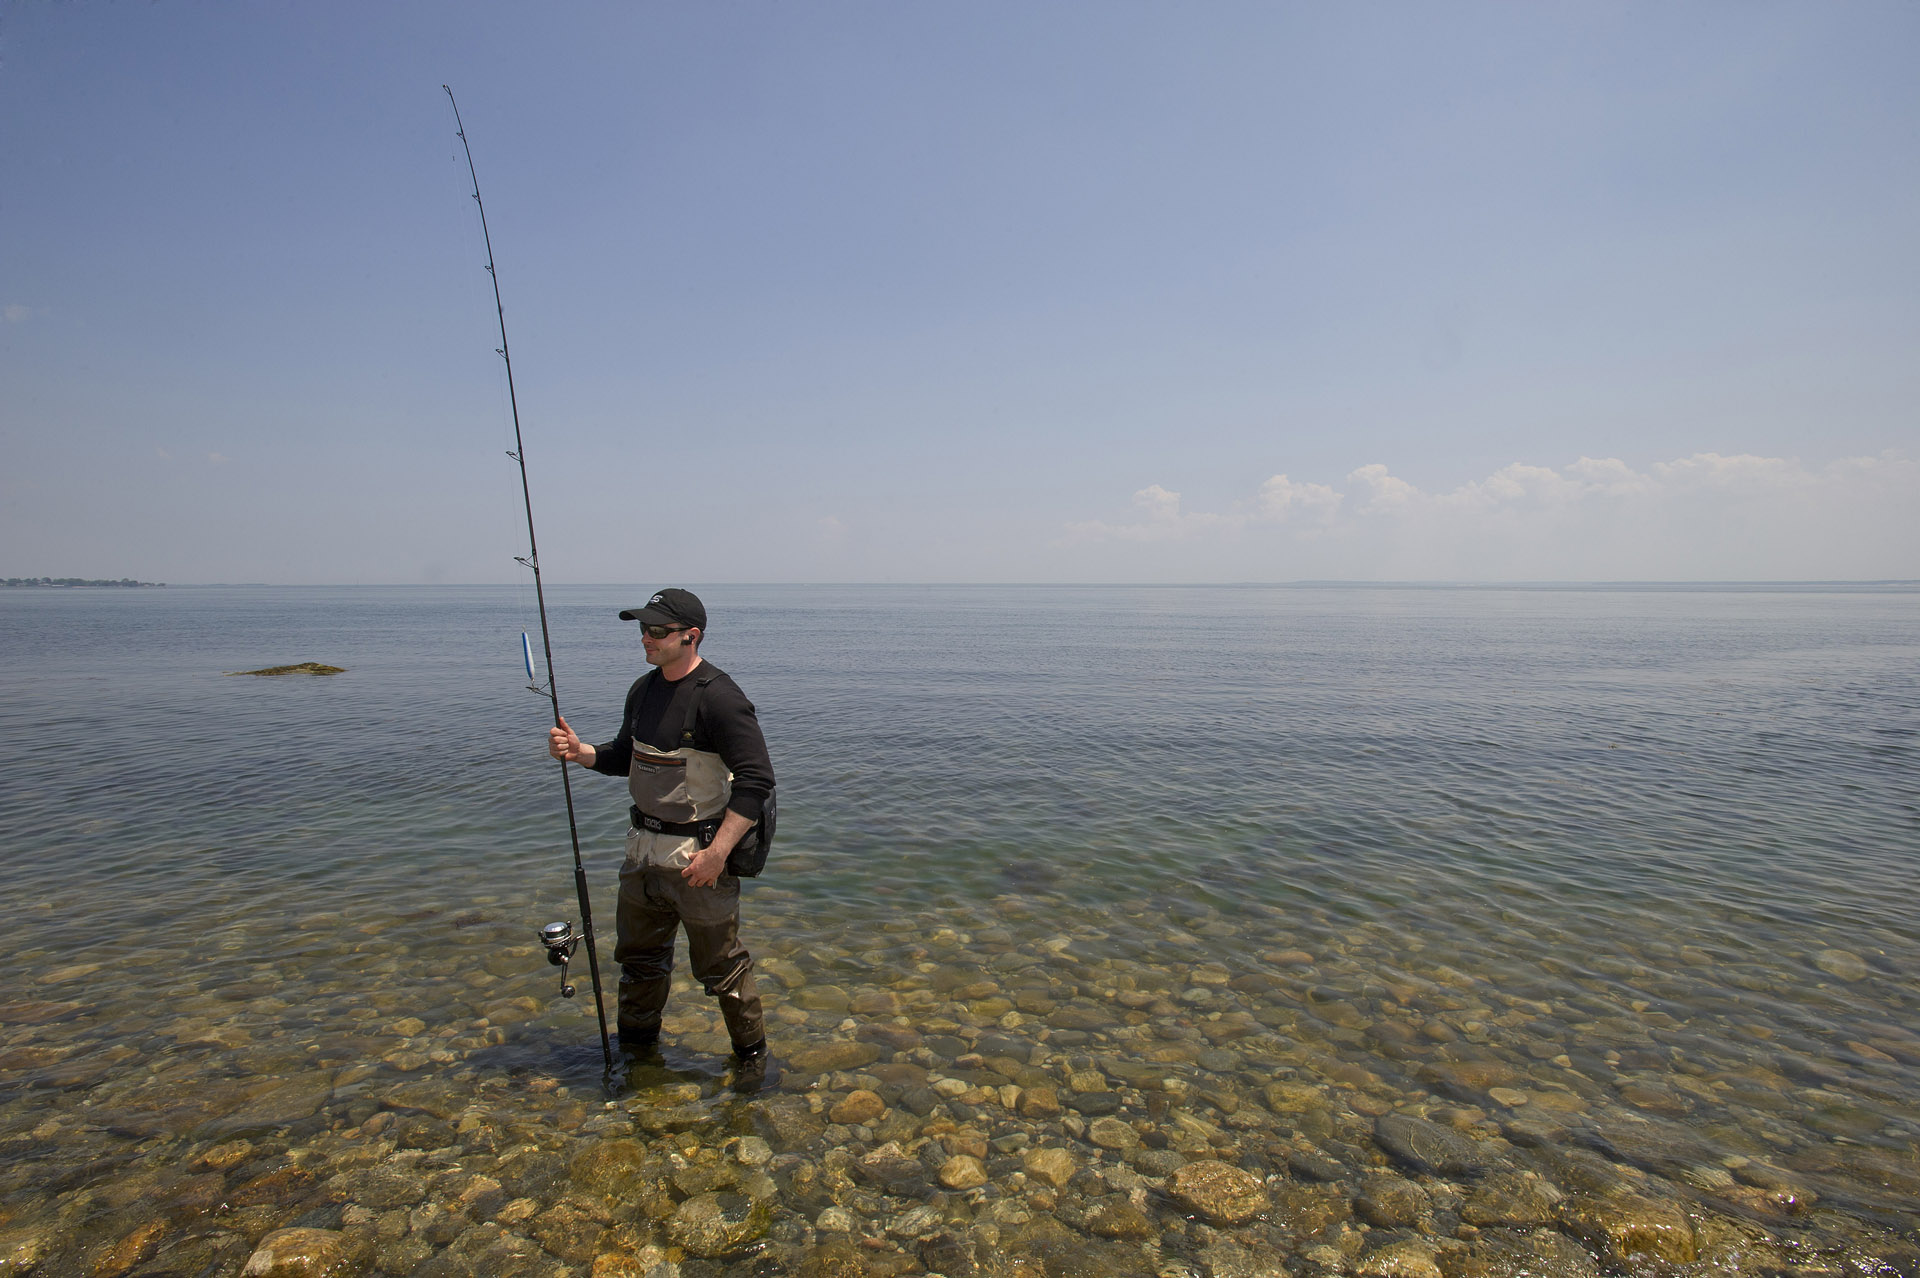 Gregory McNamara fishes in the water of the Long Island Sound at Shippan Point in Stamford, Conn., on Thursday, May 30, 2013.